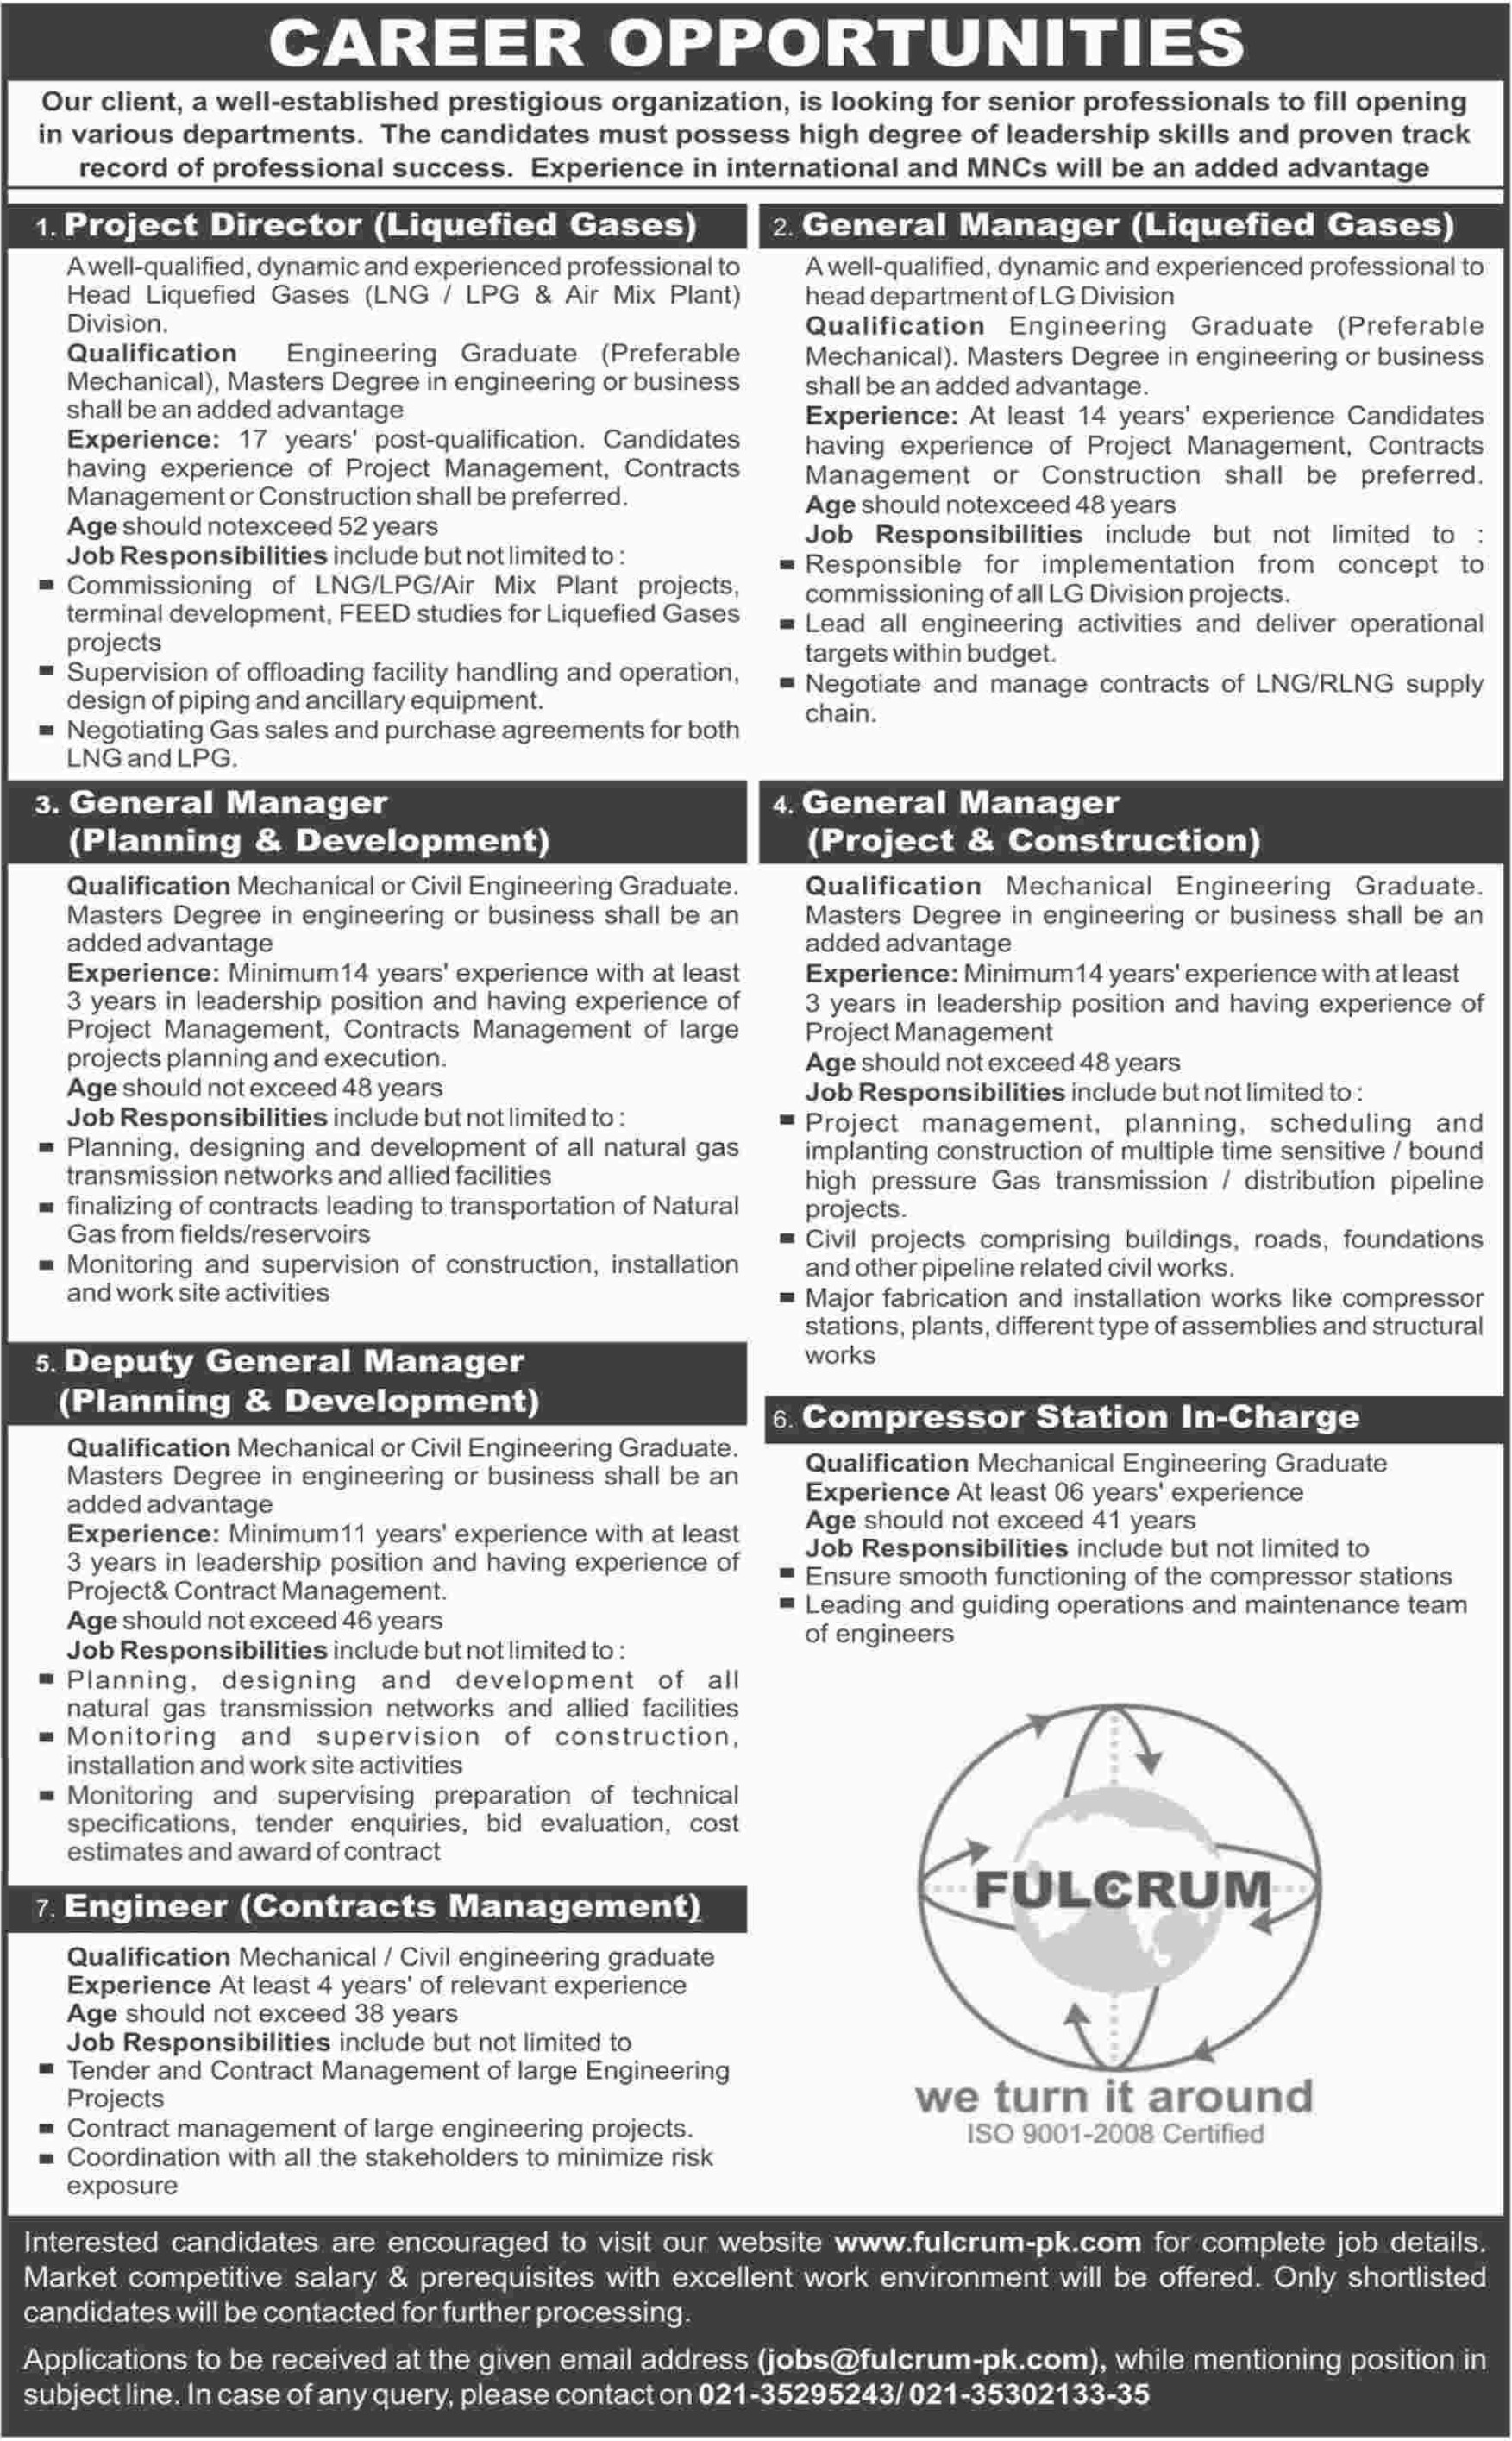 Project Director jobs in Fulcrum